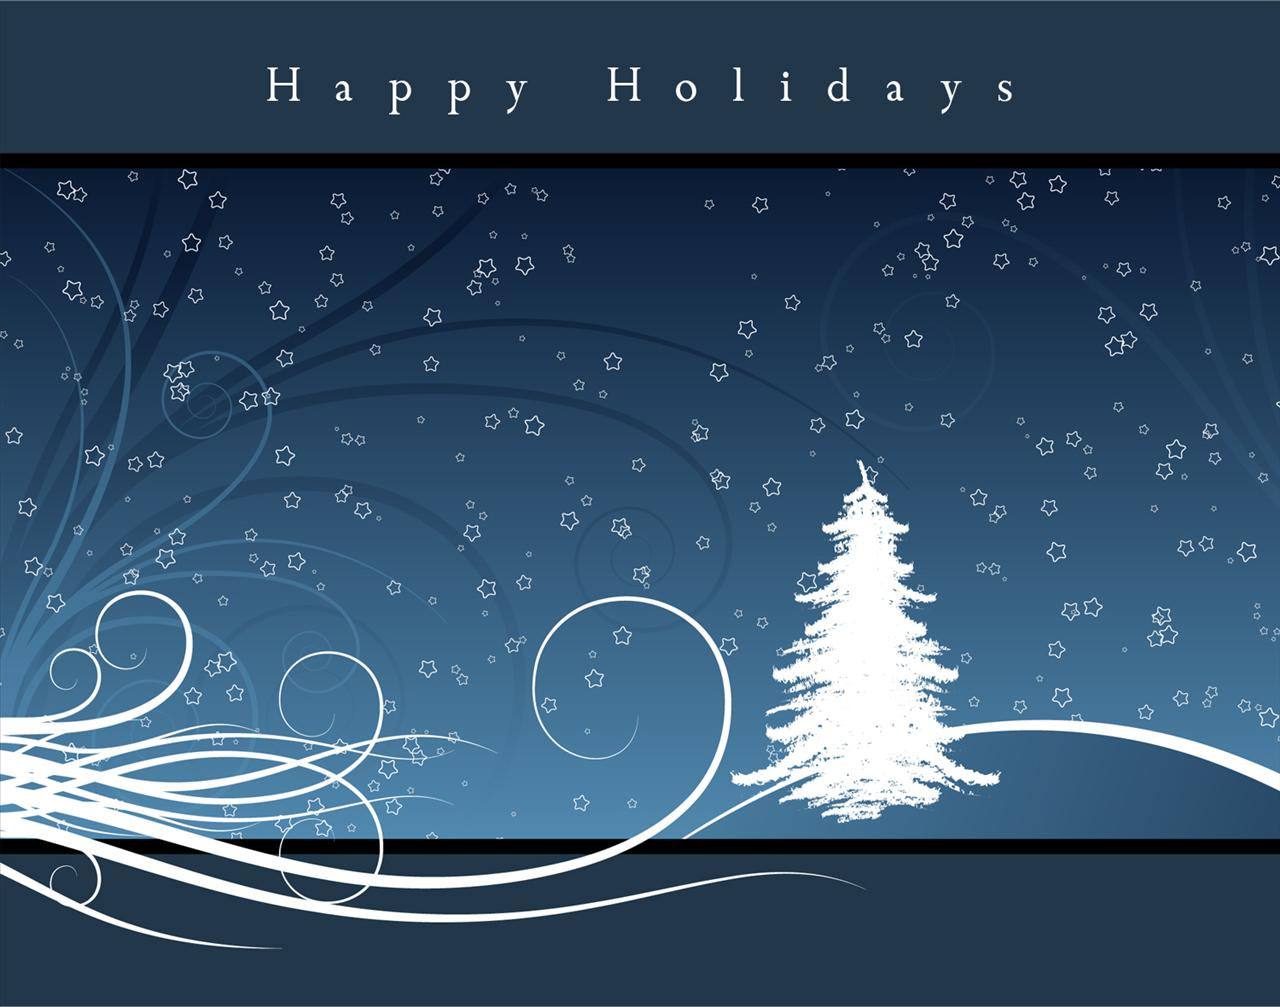 Holiday Background Images Free Holiday Free Backgrounds